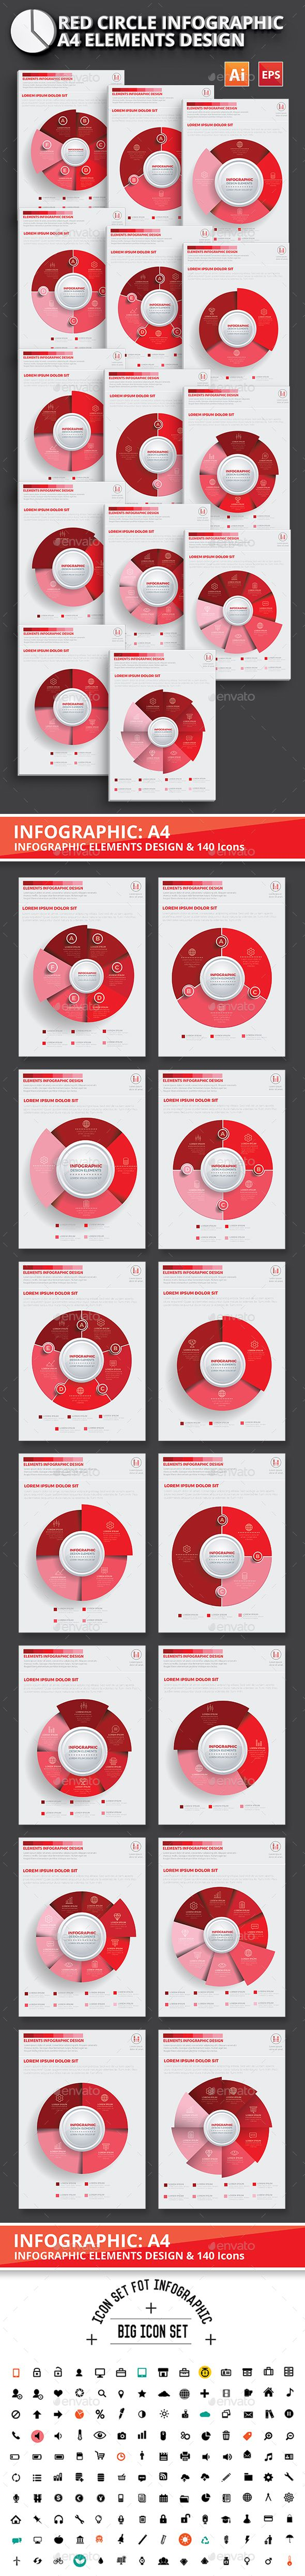 Red Circle Infographic Design Templates Vector EPS, AI Illustrator. Download here: http://graphicriver.net/item/red-circle-infographic-design/16707337?ref=ksioks